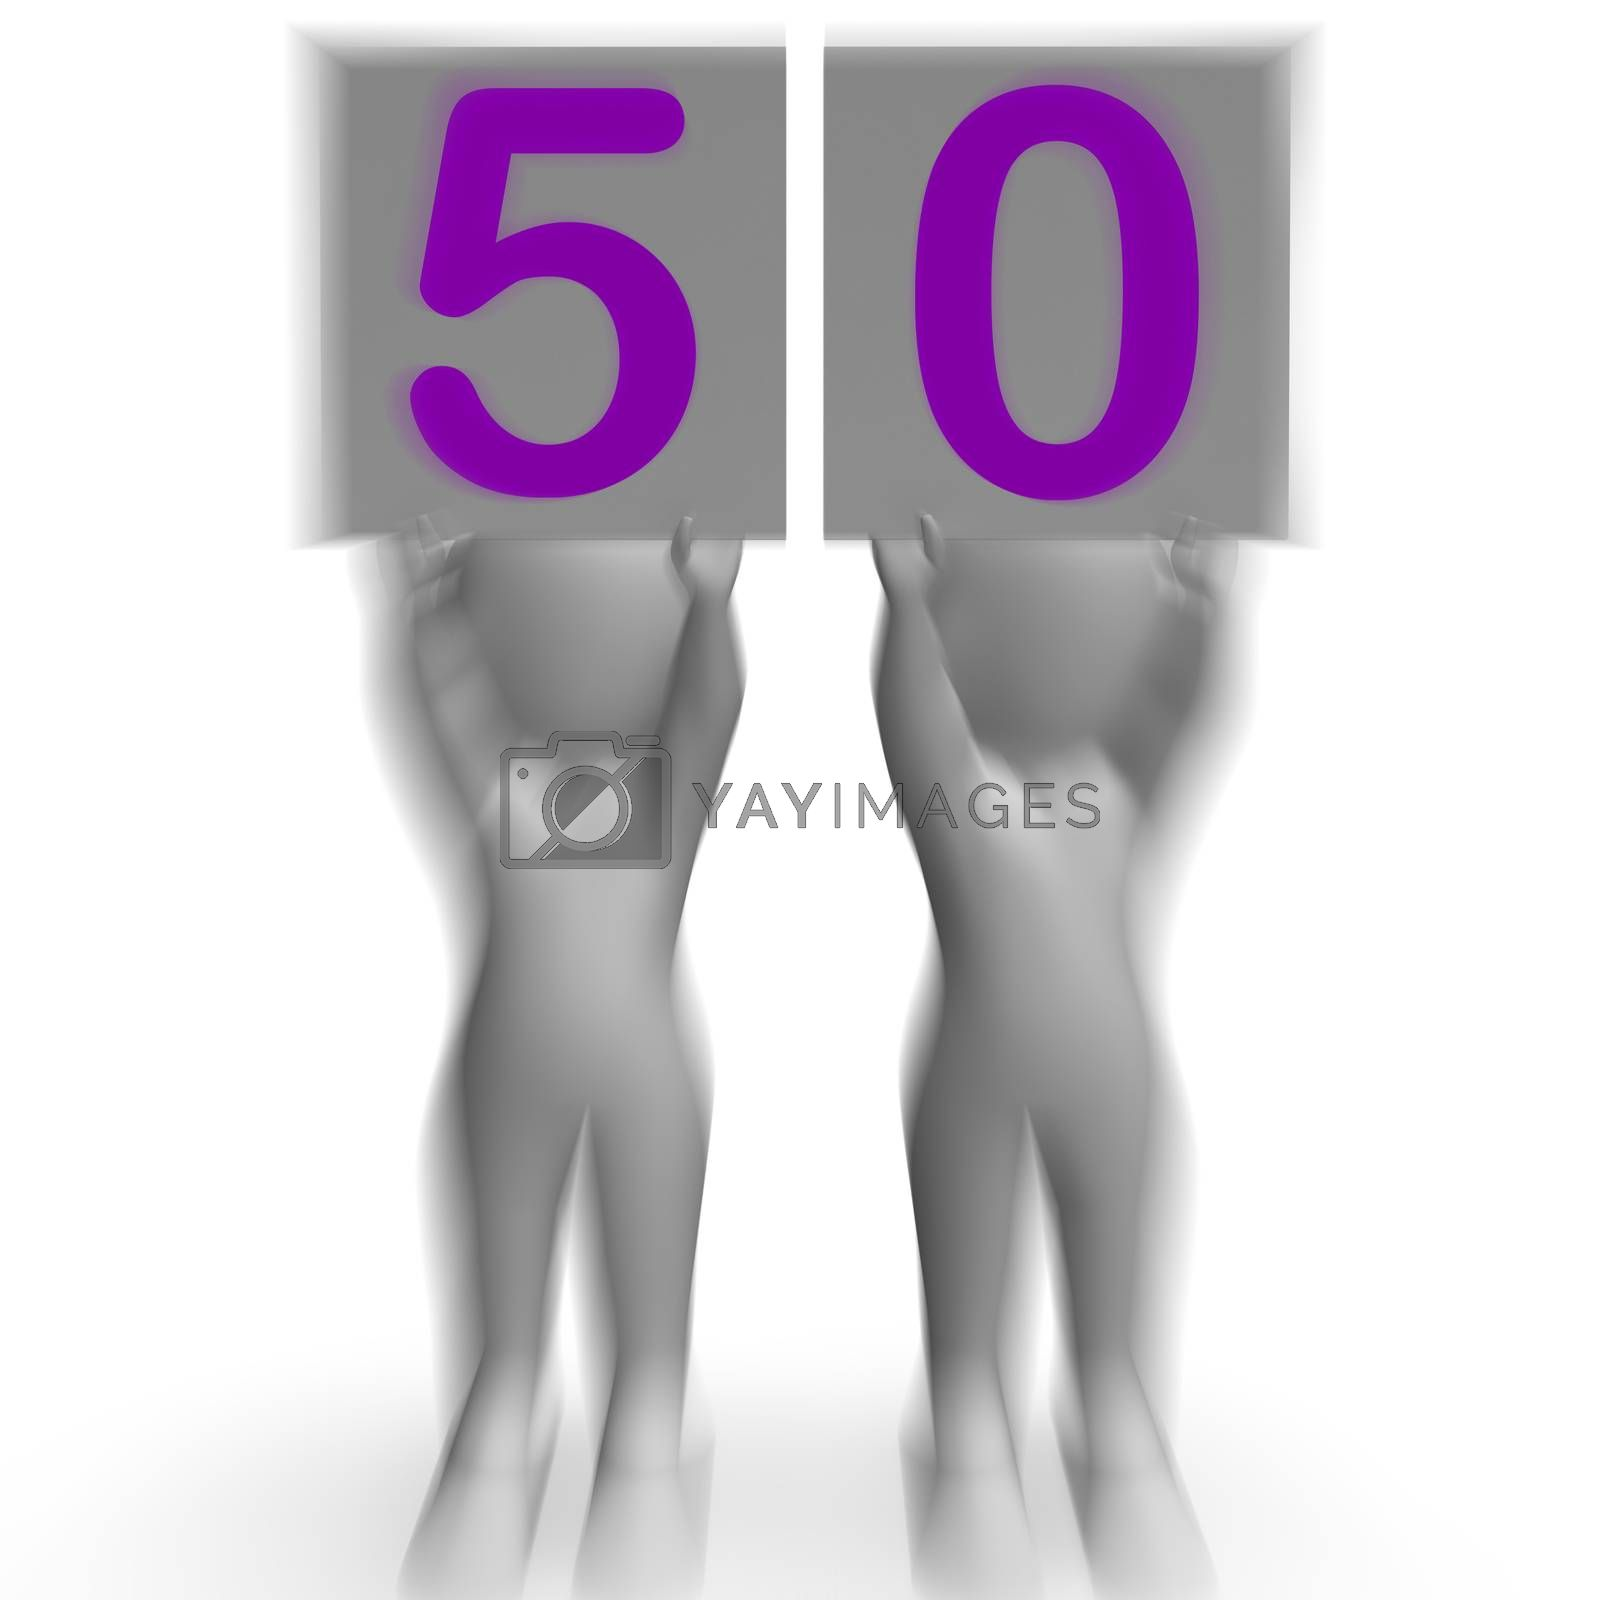 Fifty Placards Mean Anniversary Or Birthday by stuartmiles